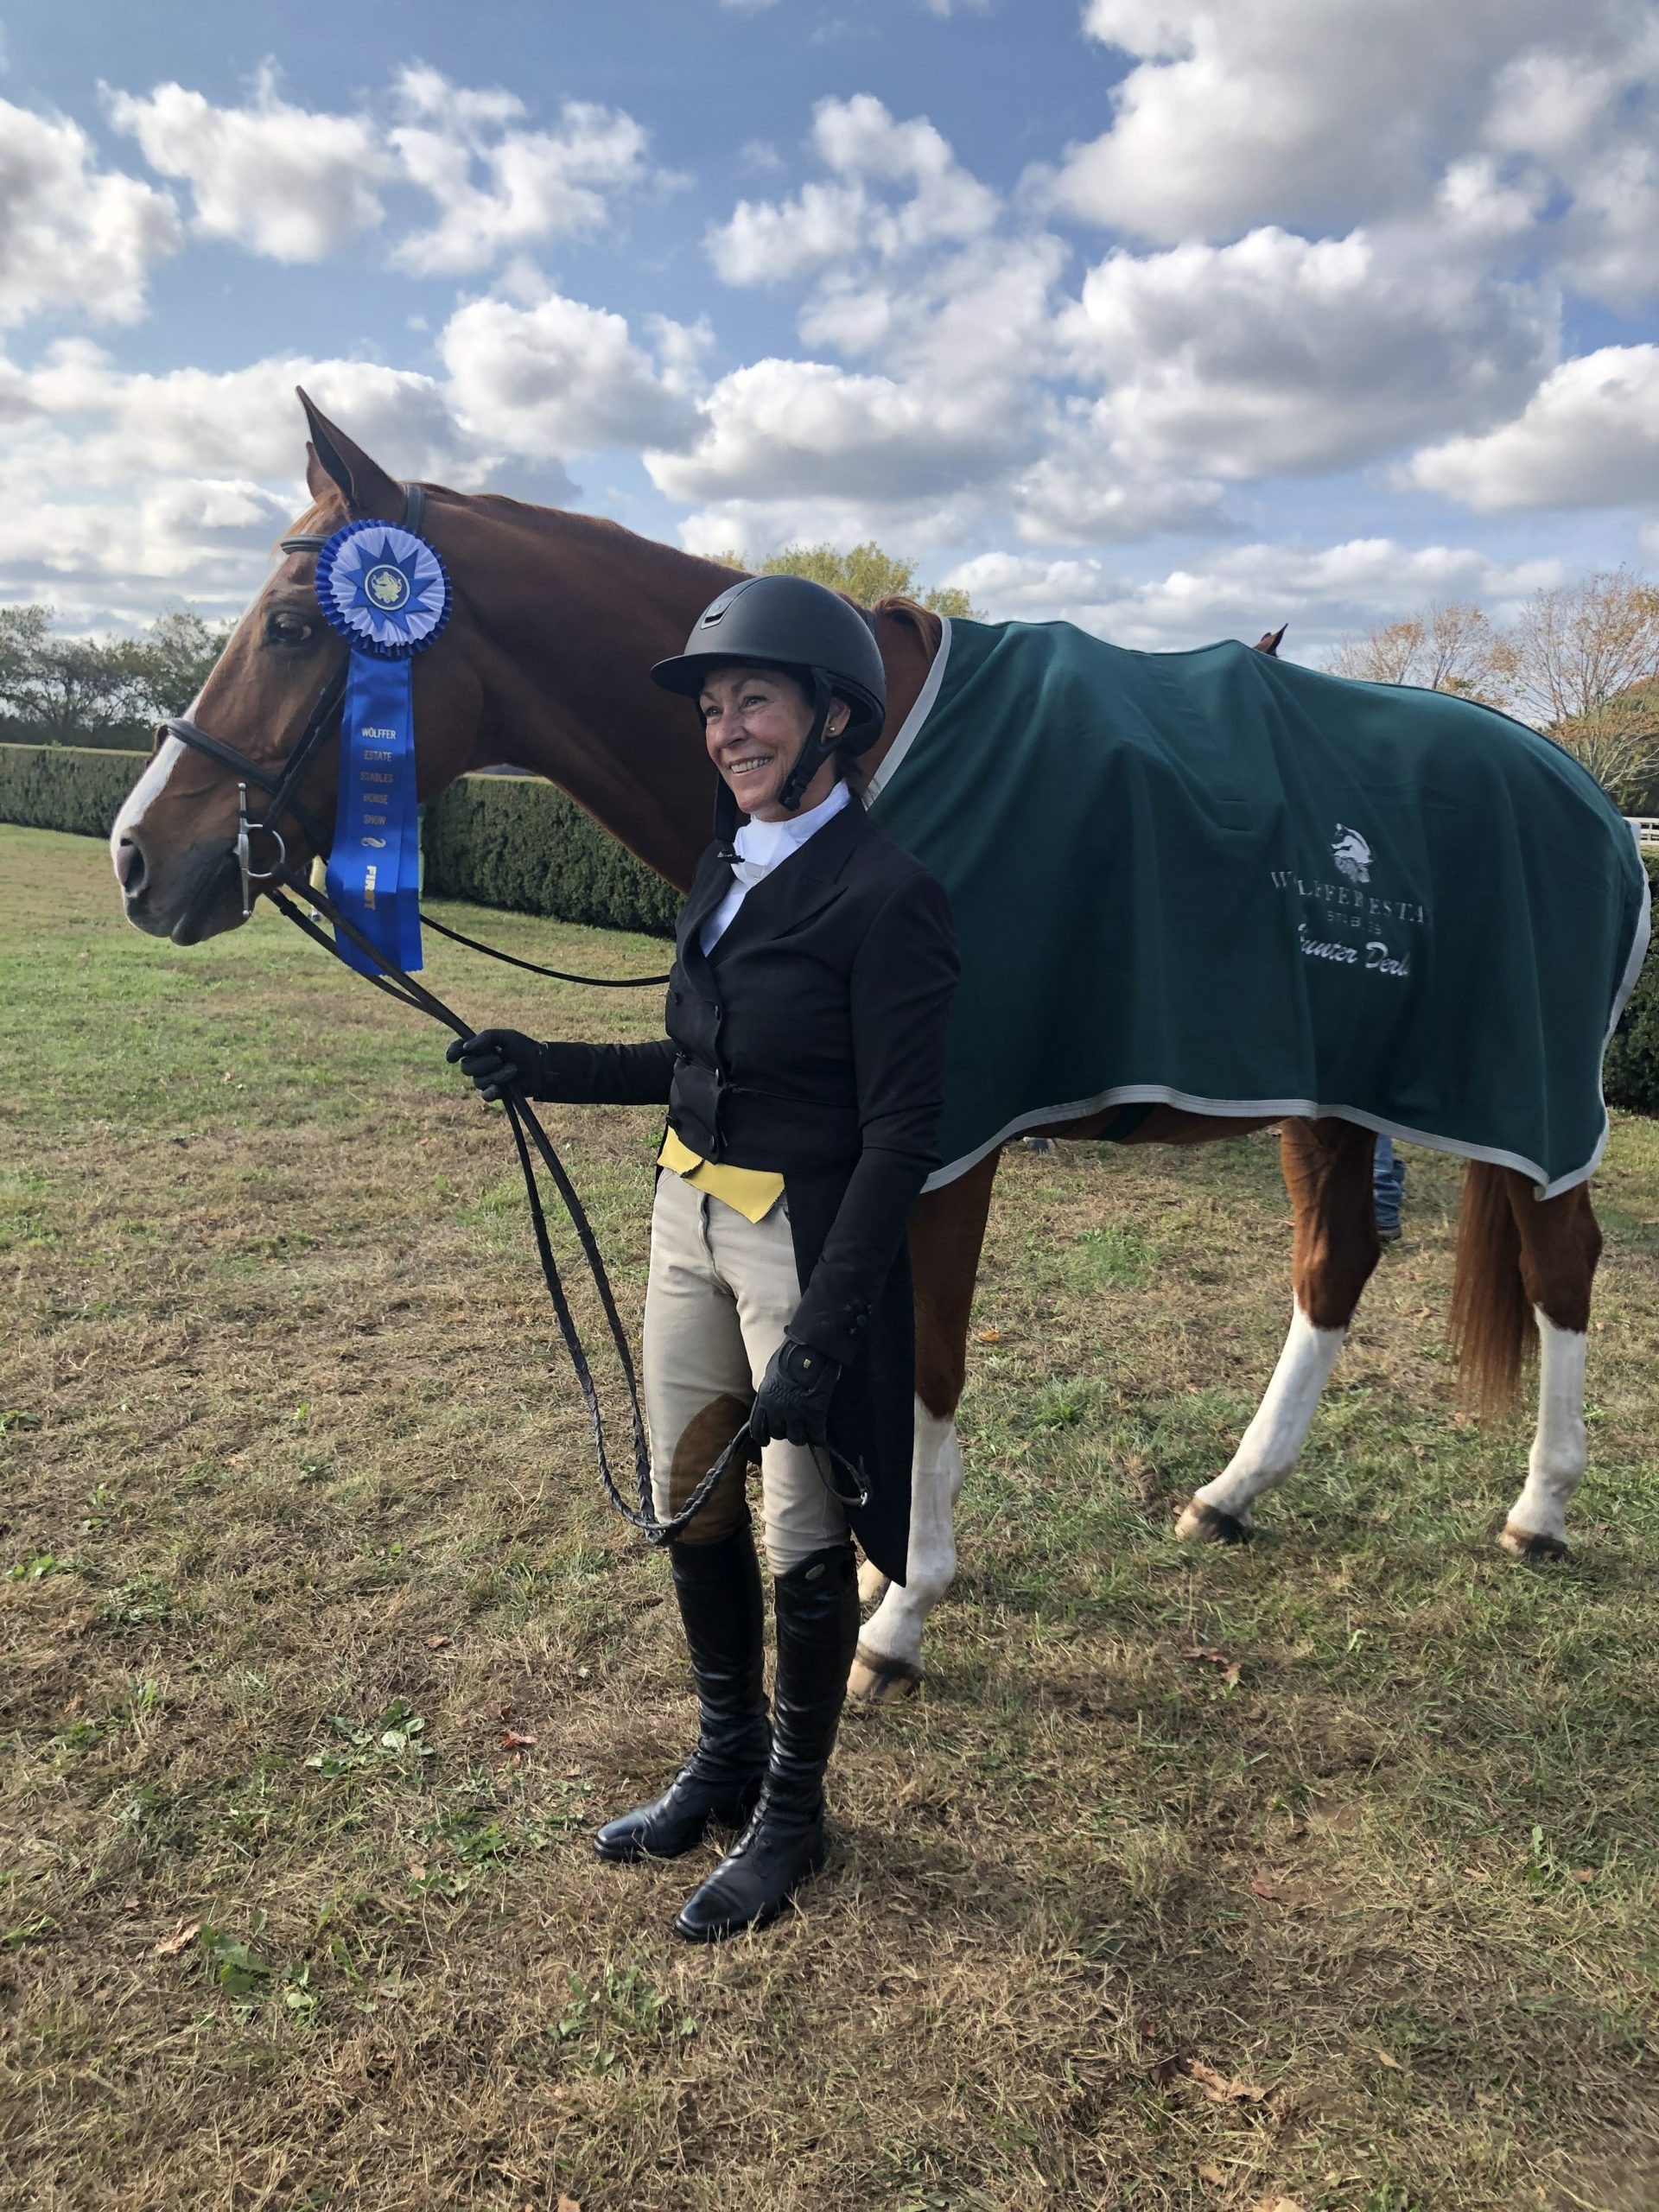 Deborah Thayer and her horse, Asterisk Z, won the 2'6-2'9 division at the Wolffer Hunter Derby on the Grand Prix field at Wolffer Estate Stables on Sunday. Thayer trains with Harriet deLeyer at Topping Riding Club.